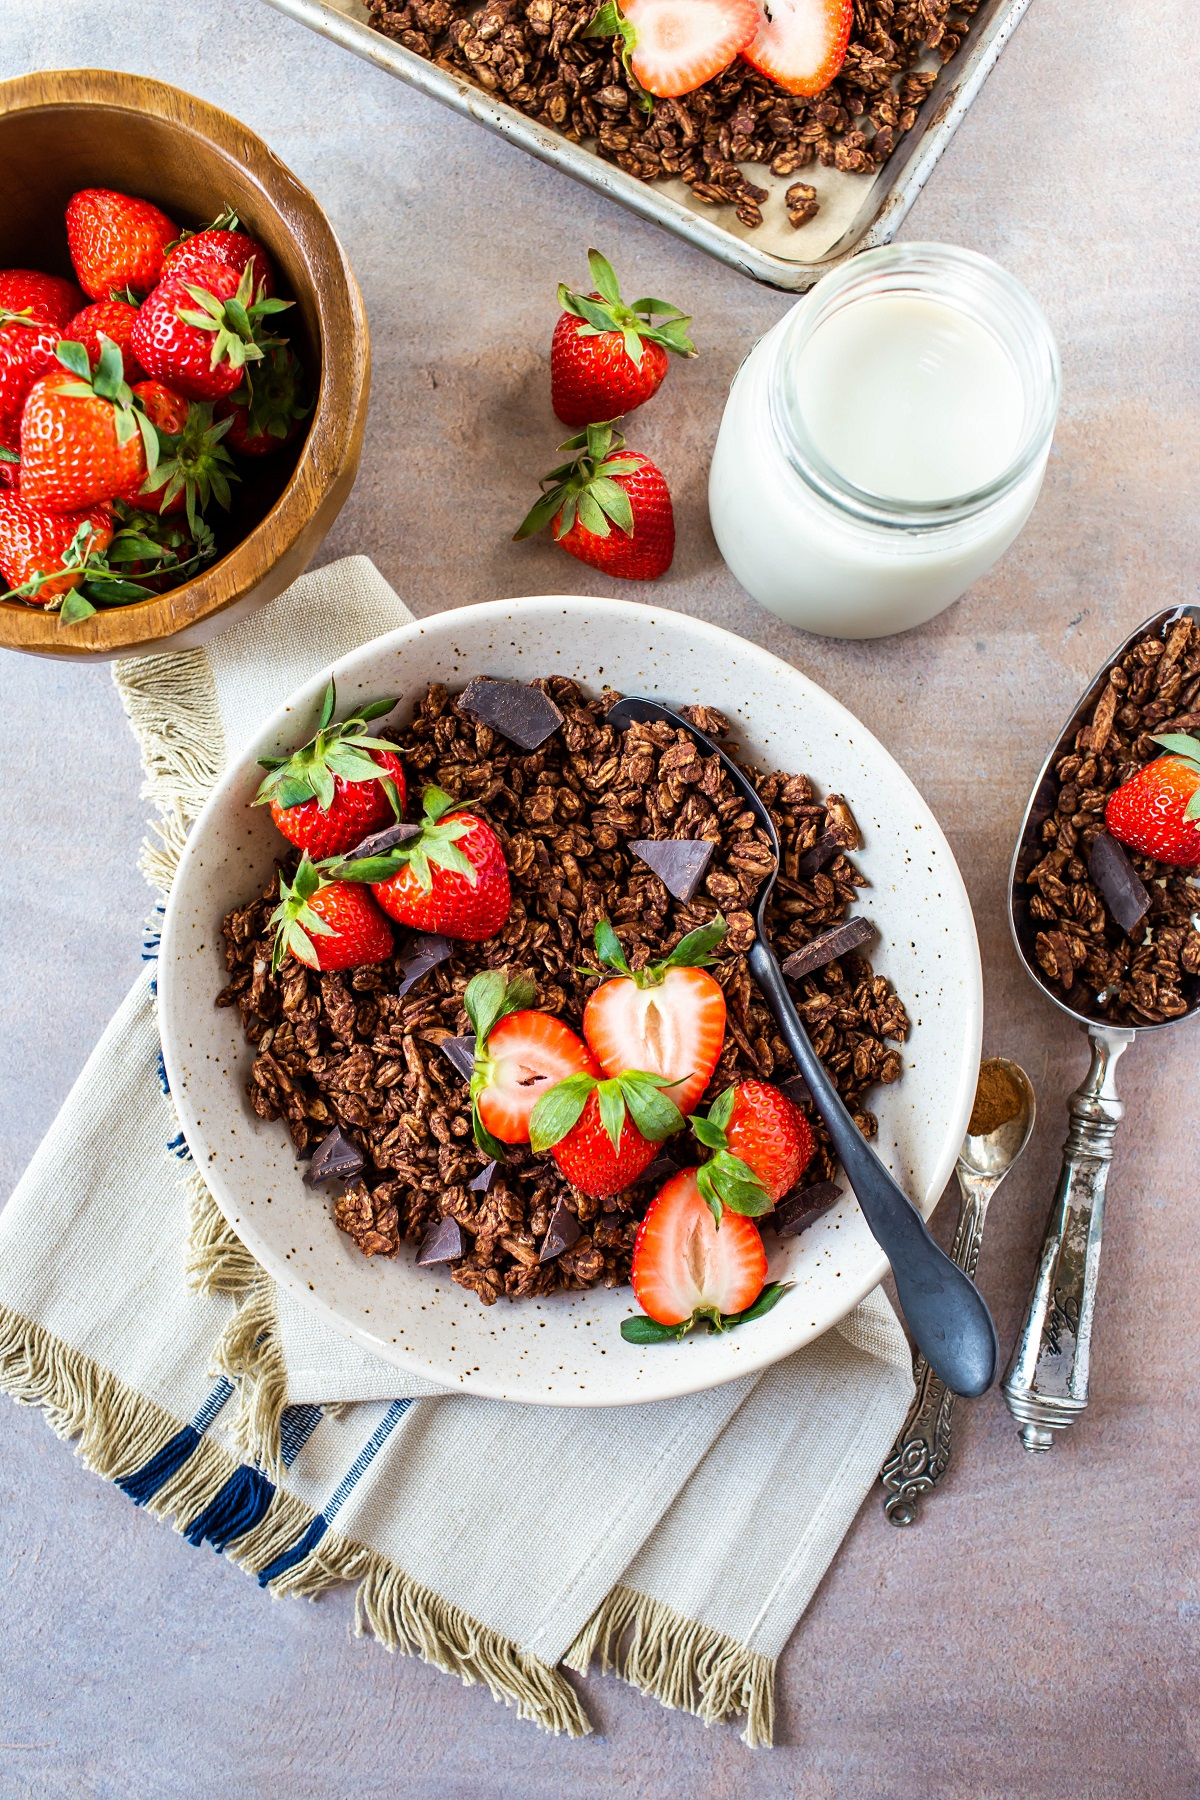 bowl of chocolate granola with glass of milk and extra bowl of strawberries